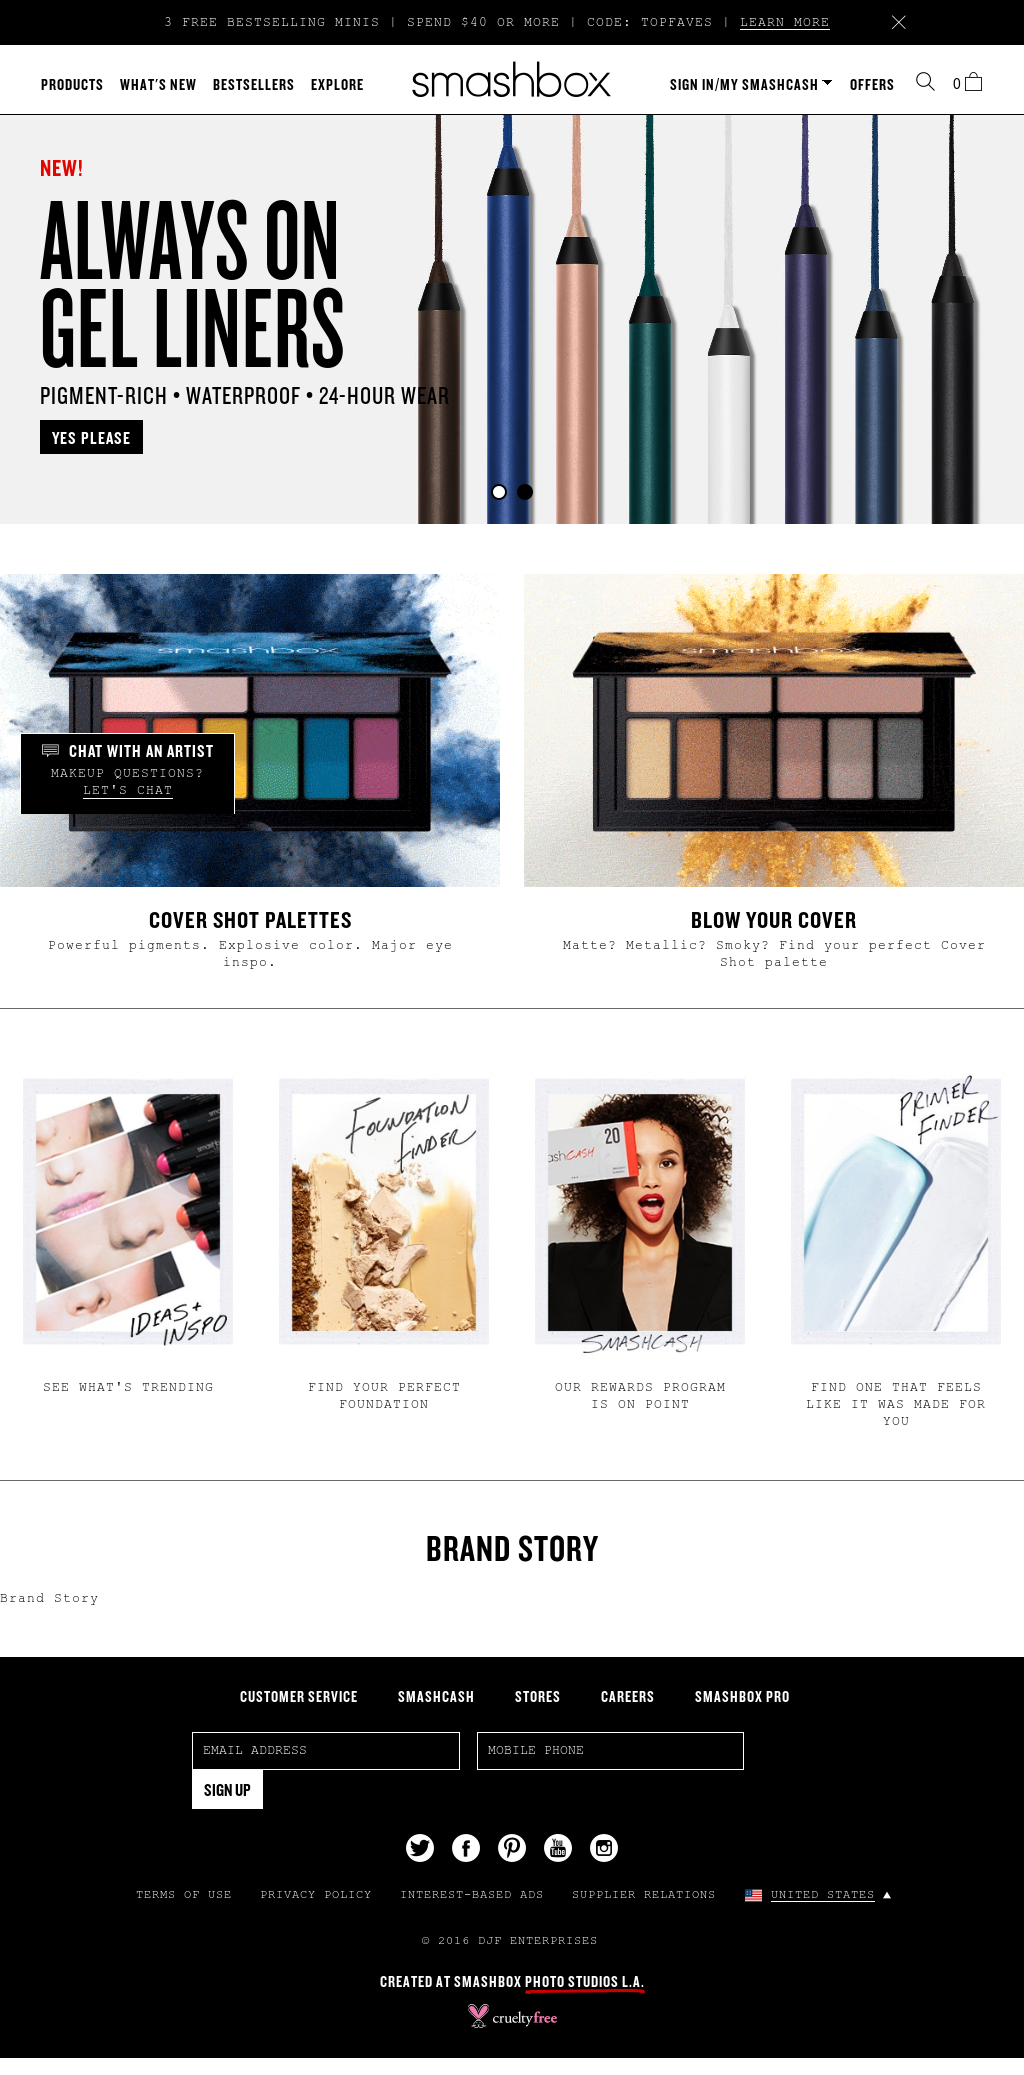 Smashbox Competitors, Revenue and Employees - Owler Company Profile